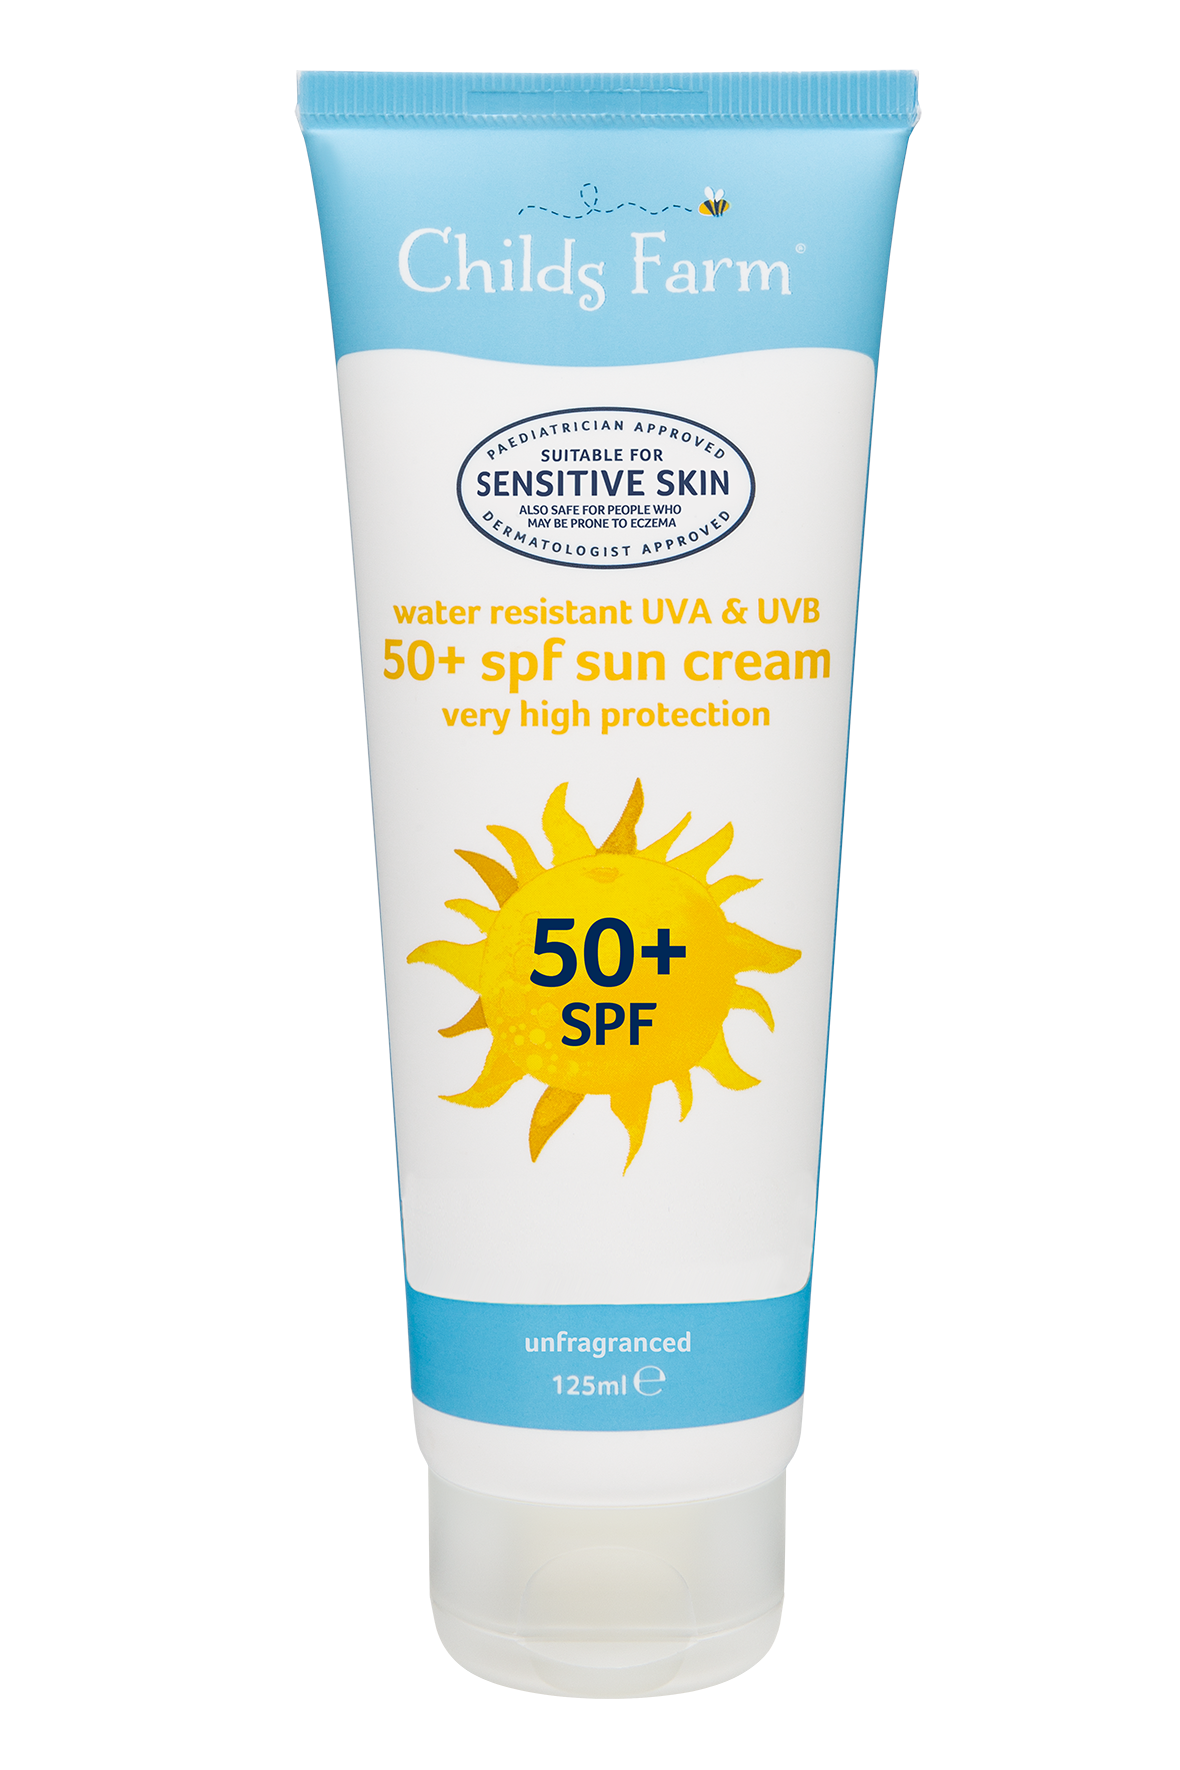 Childs Farm Sun Cream 50+ SPF Unfragranced 125ml